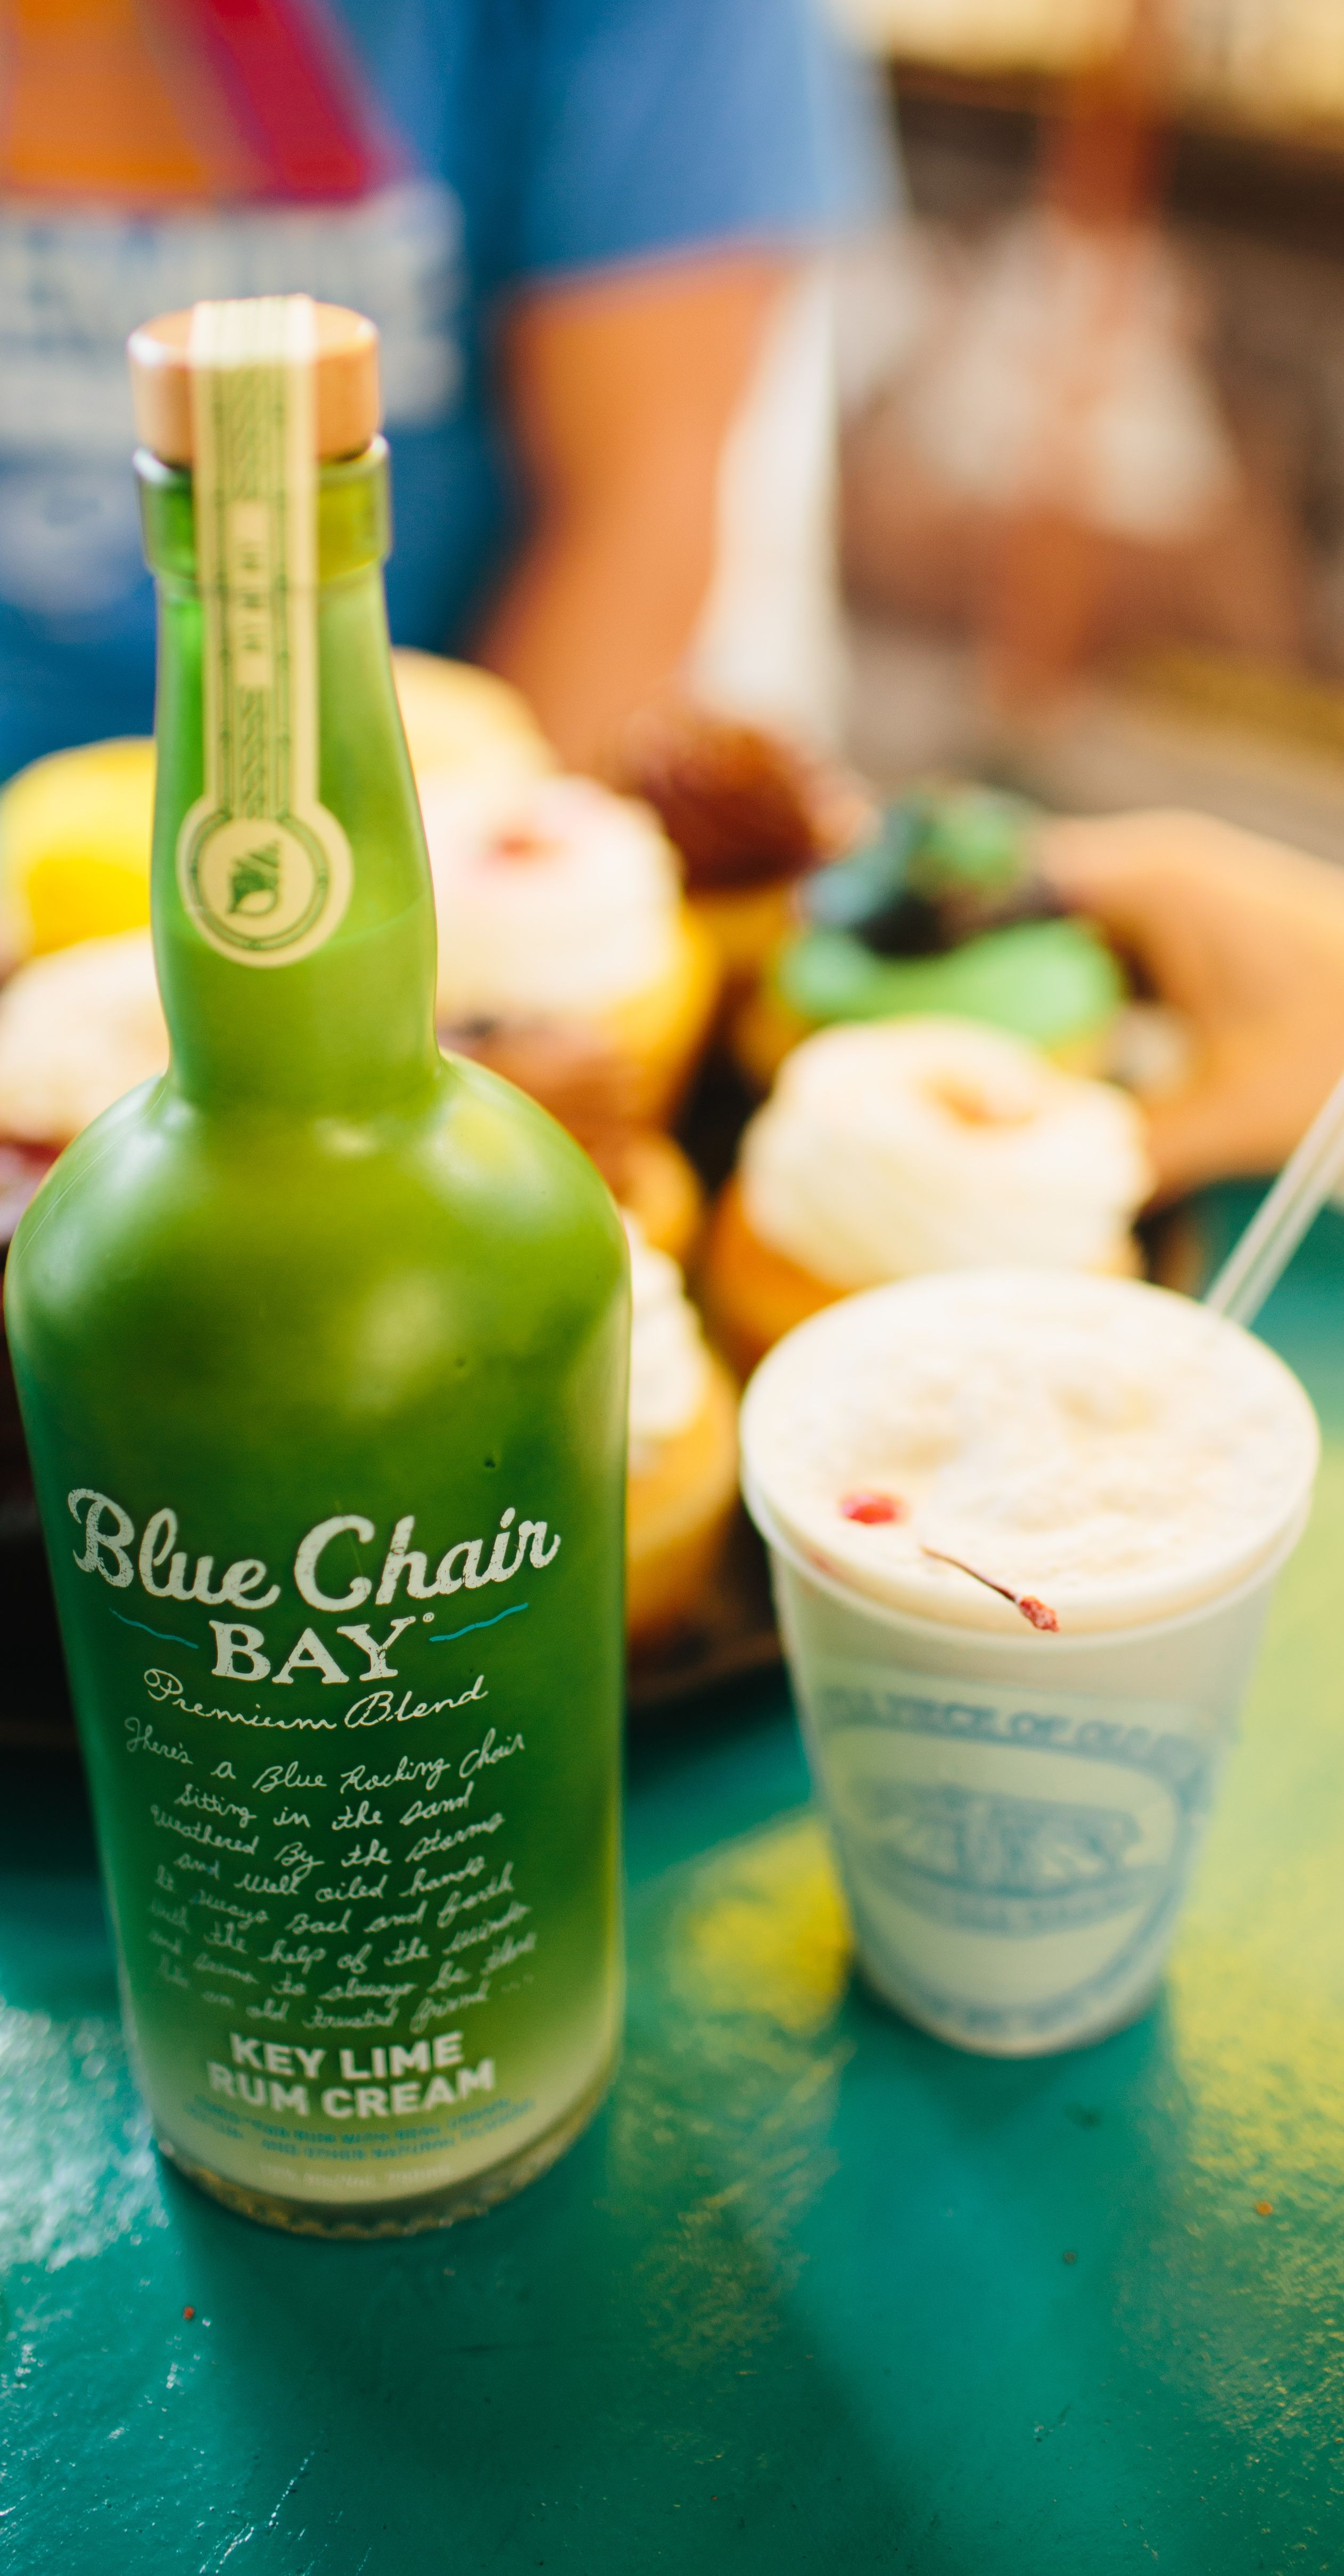 Buy Blue Chair Bay Rum Online Tattoo For Sale Coconut  Check Now Blog